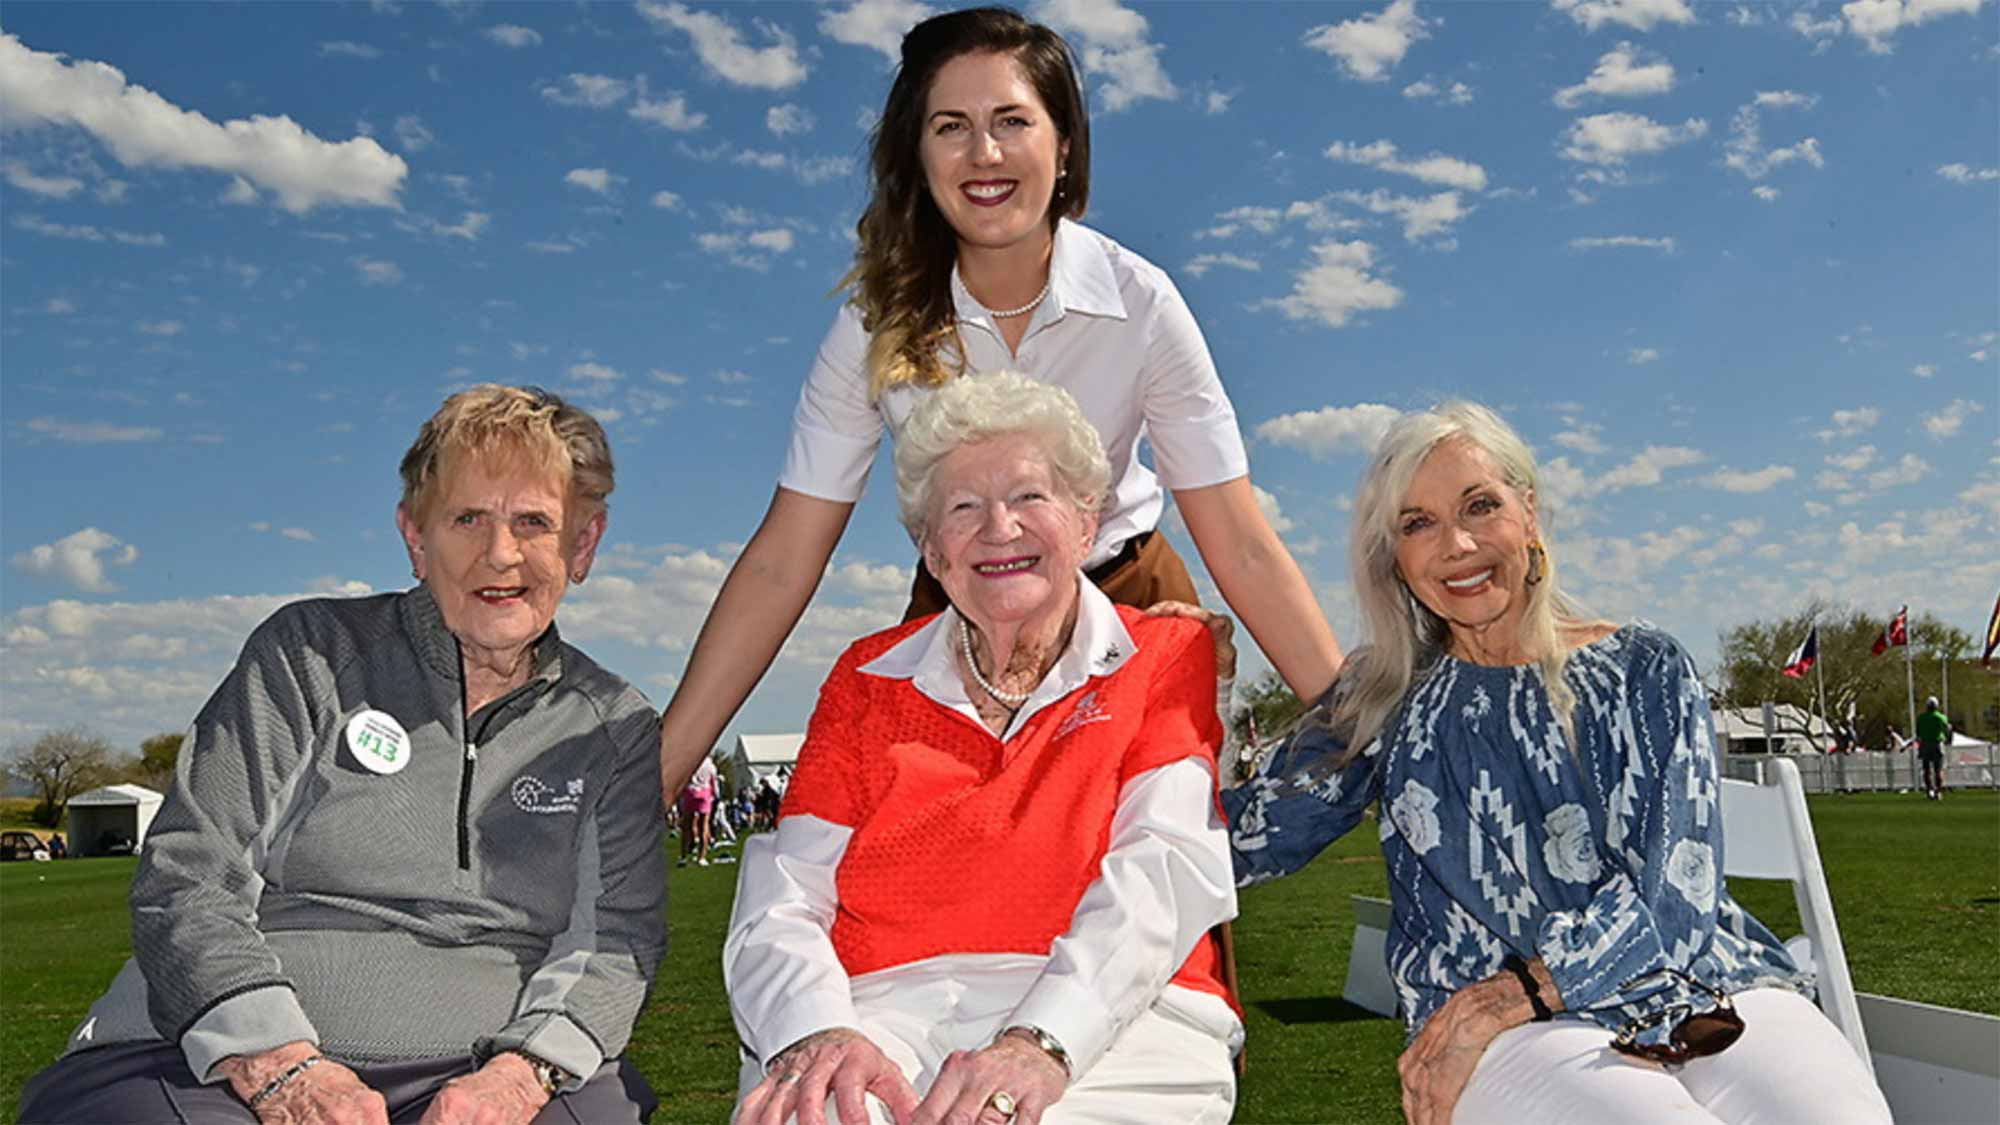 Sandra Gal poses with LPGA Founders Shirley Spork, Marilynn Smith and Marlene Bauer Hagge during the 2019 Bank of Hope Founders Cup